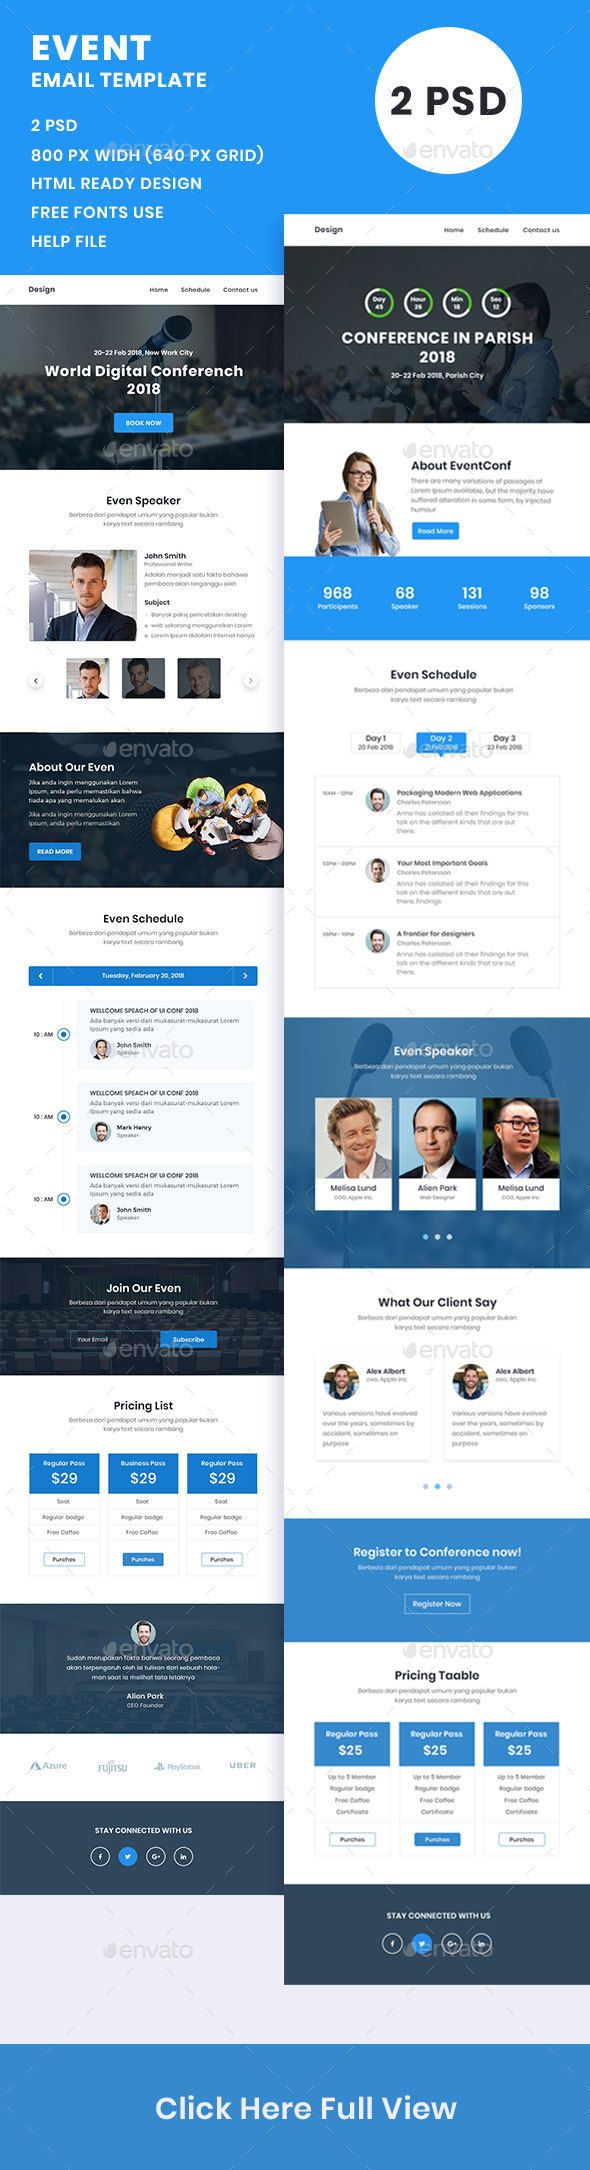 Event Conference Email Template Psd E Newsletter Templates